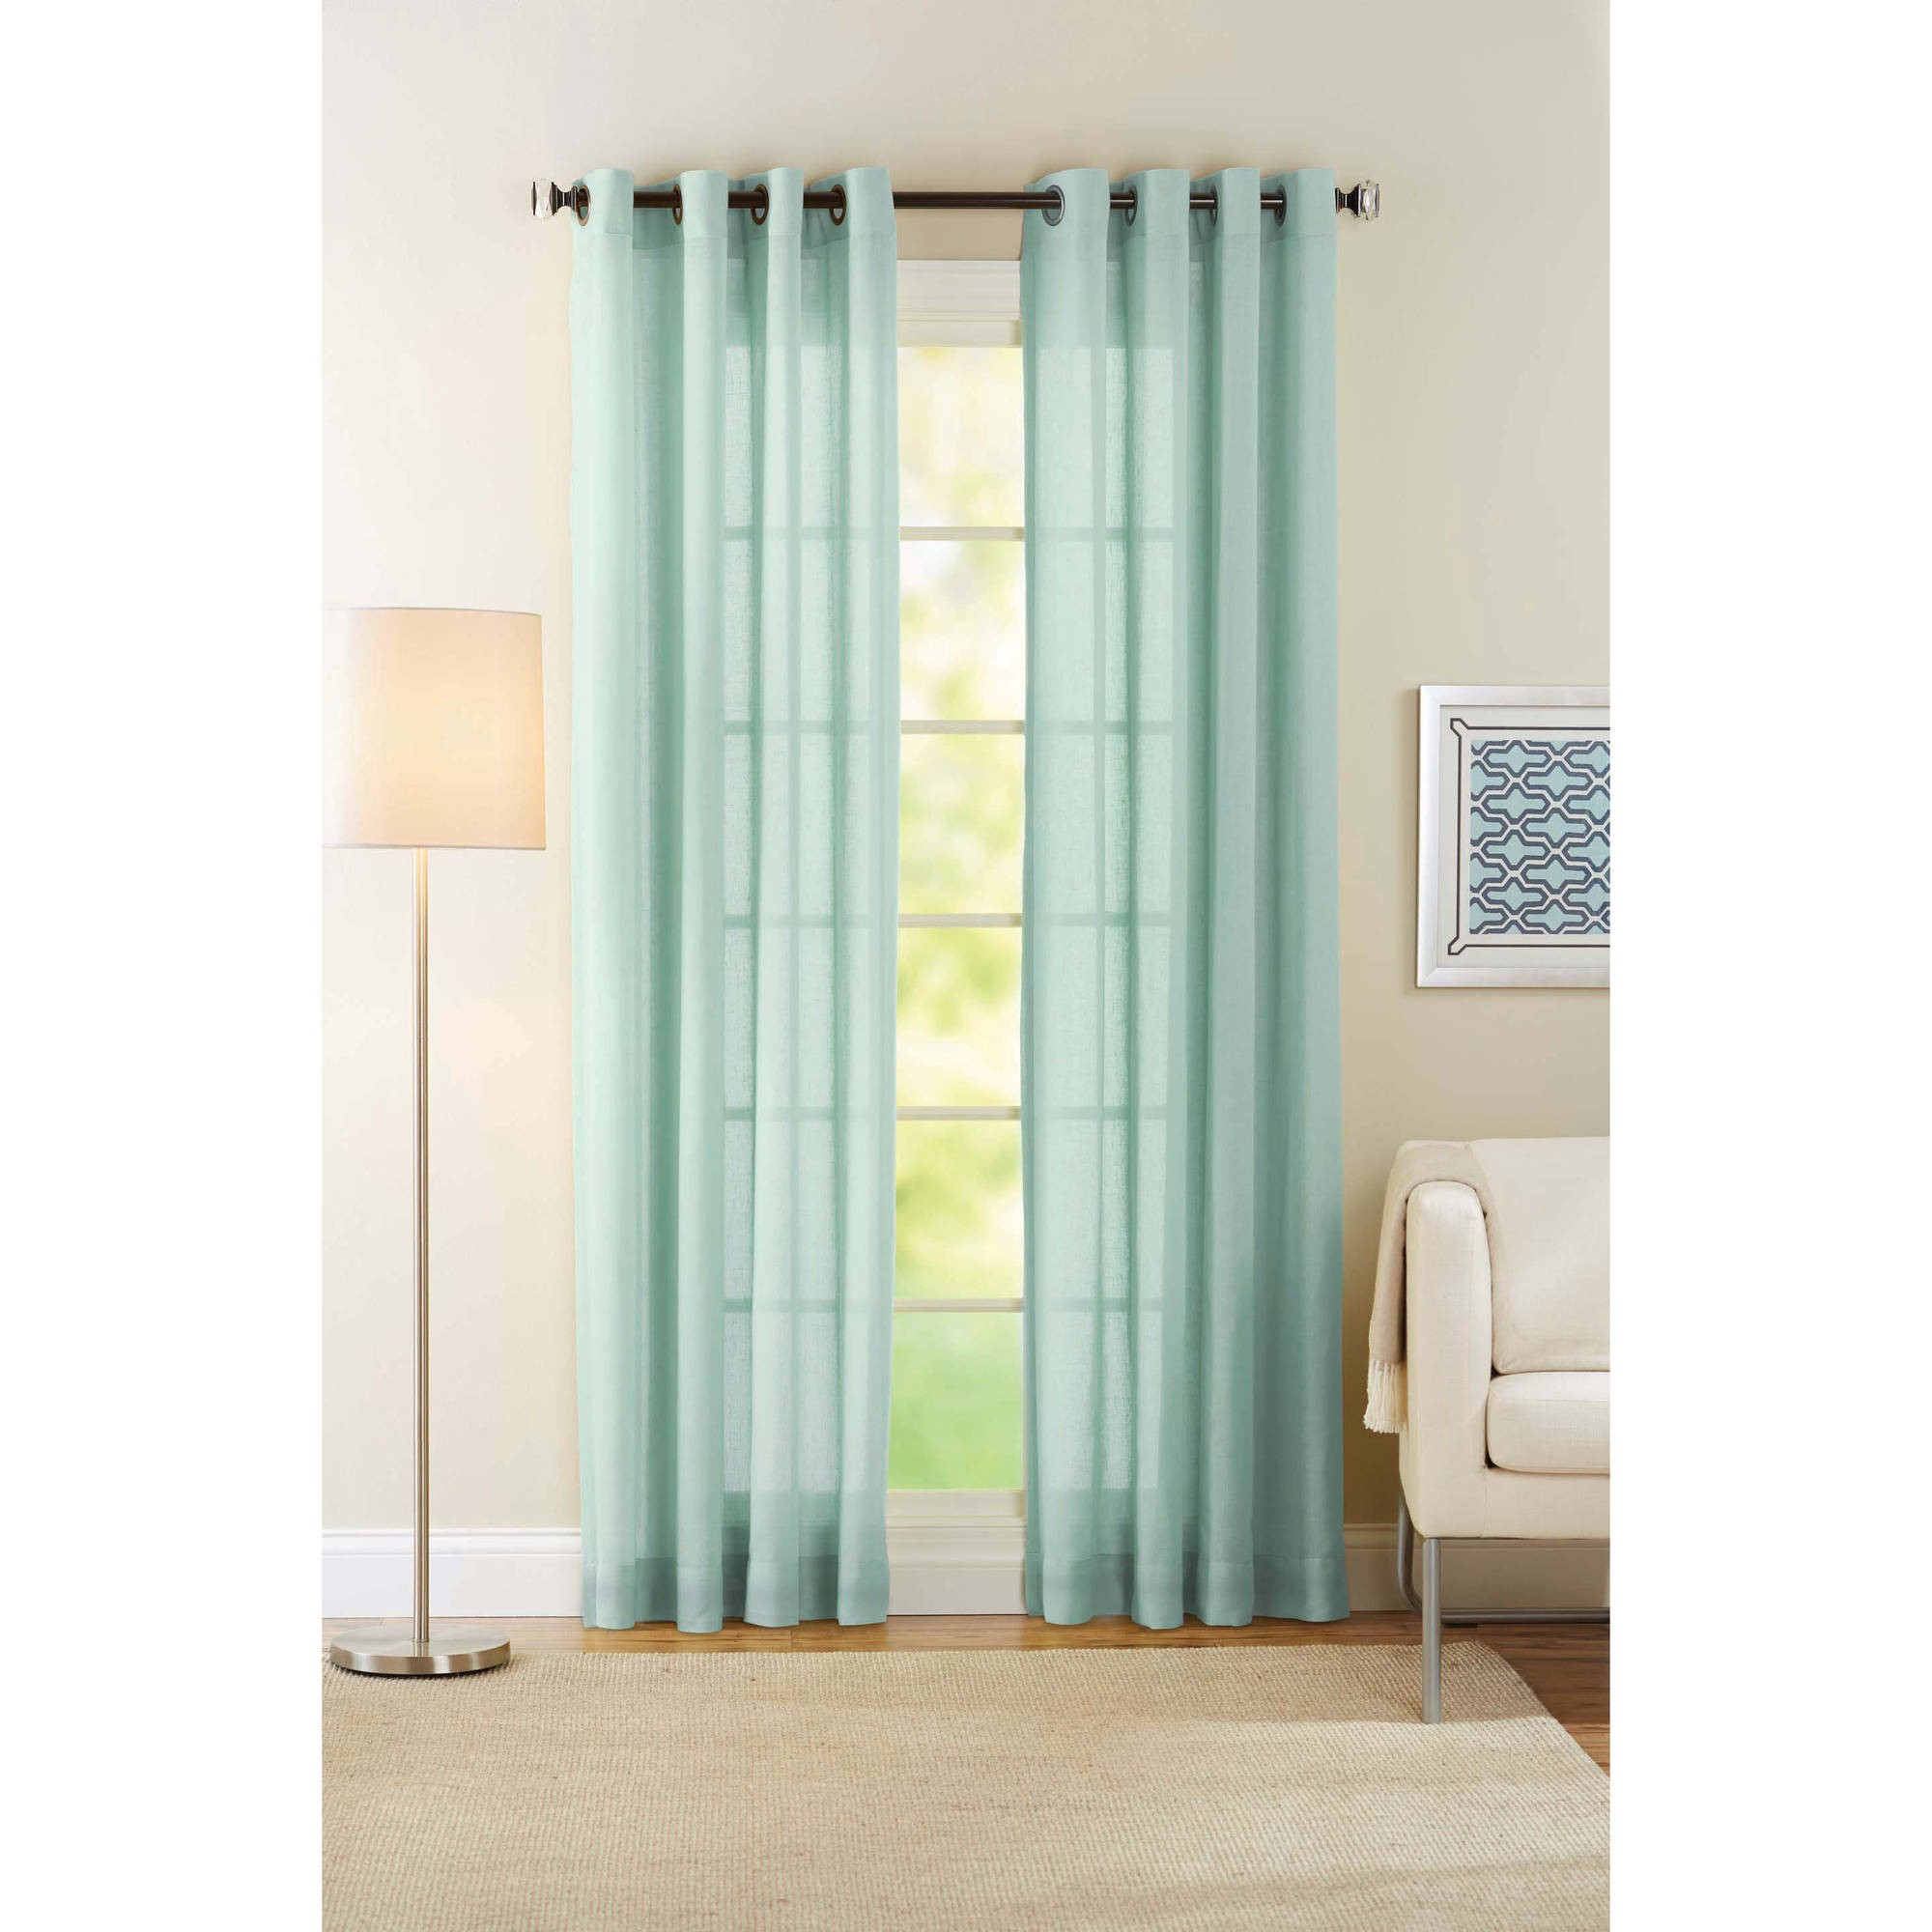 Better Homes and Gardens Semi-Sheer Polyester Curtain Panel by Keeco